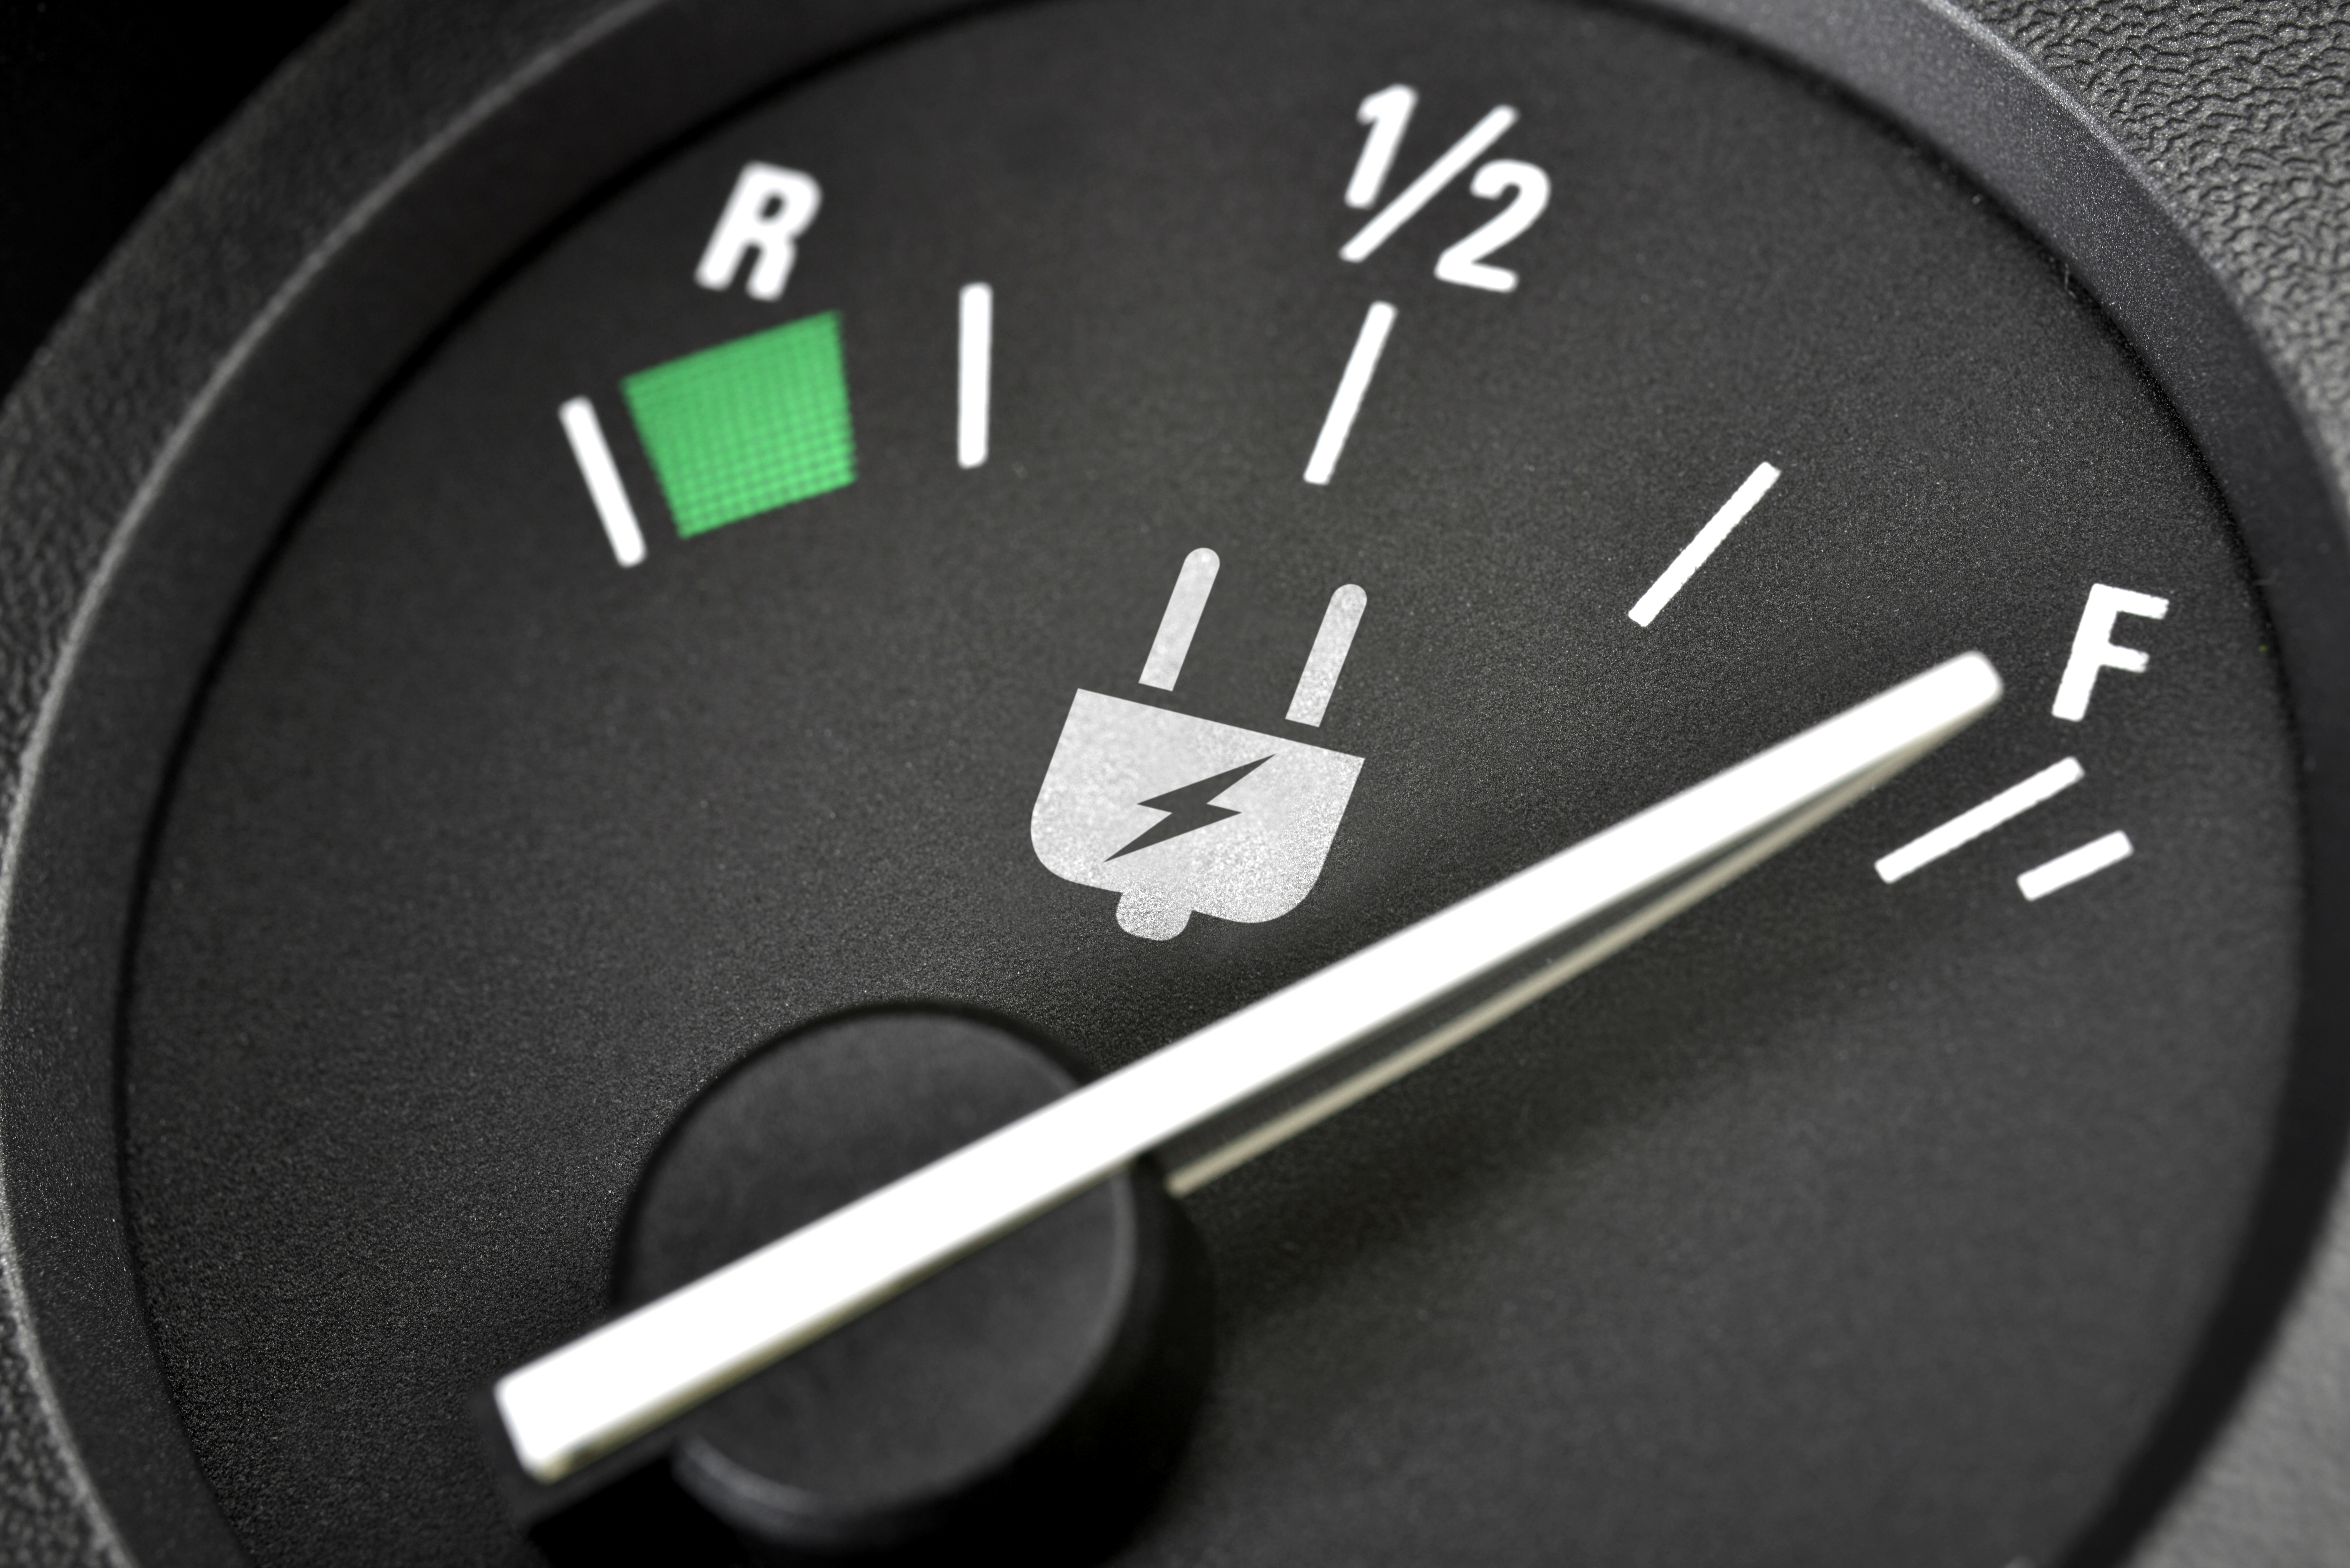 recharge dial in an electric car showing battery as full and when to recharge the car